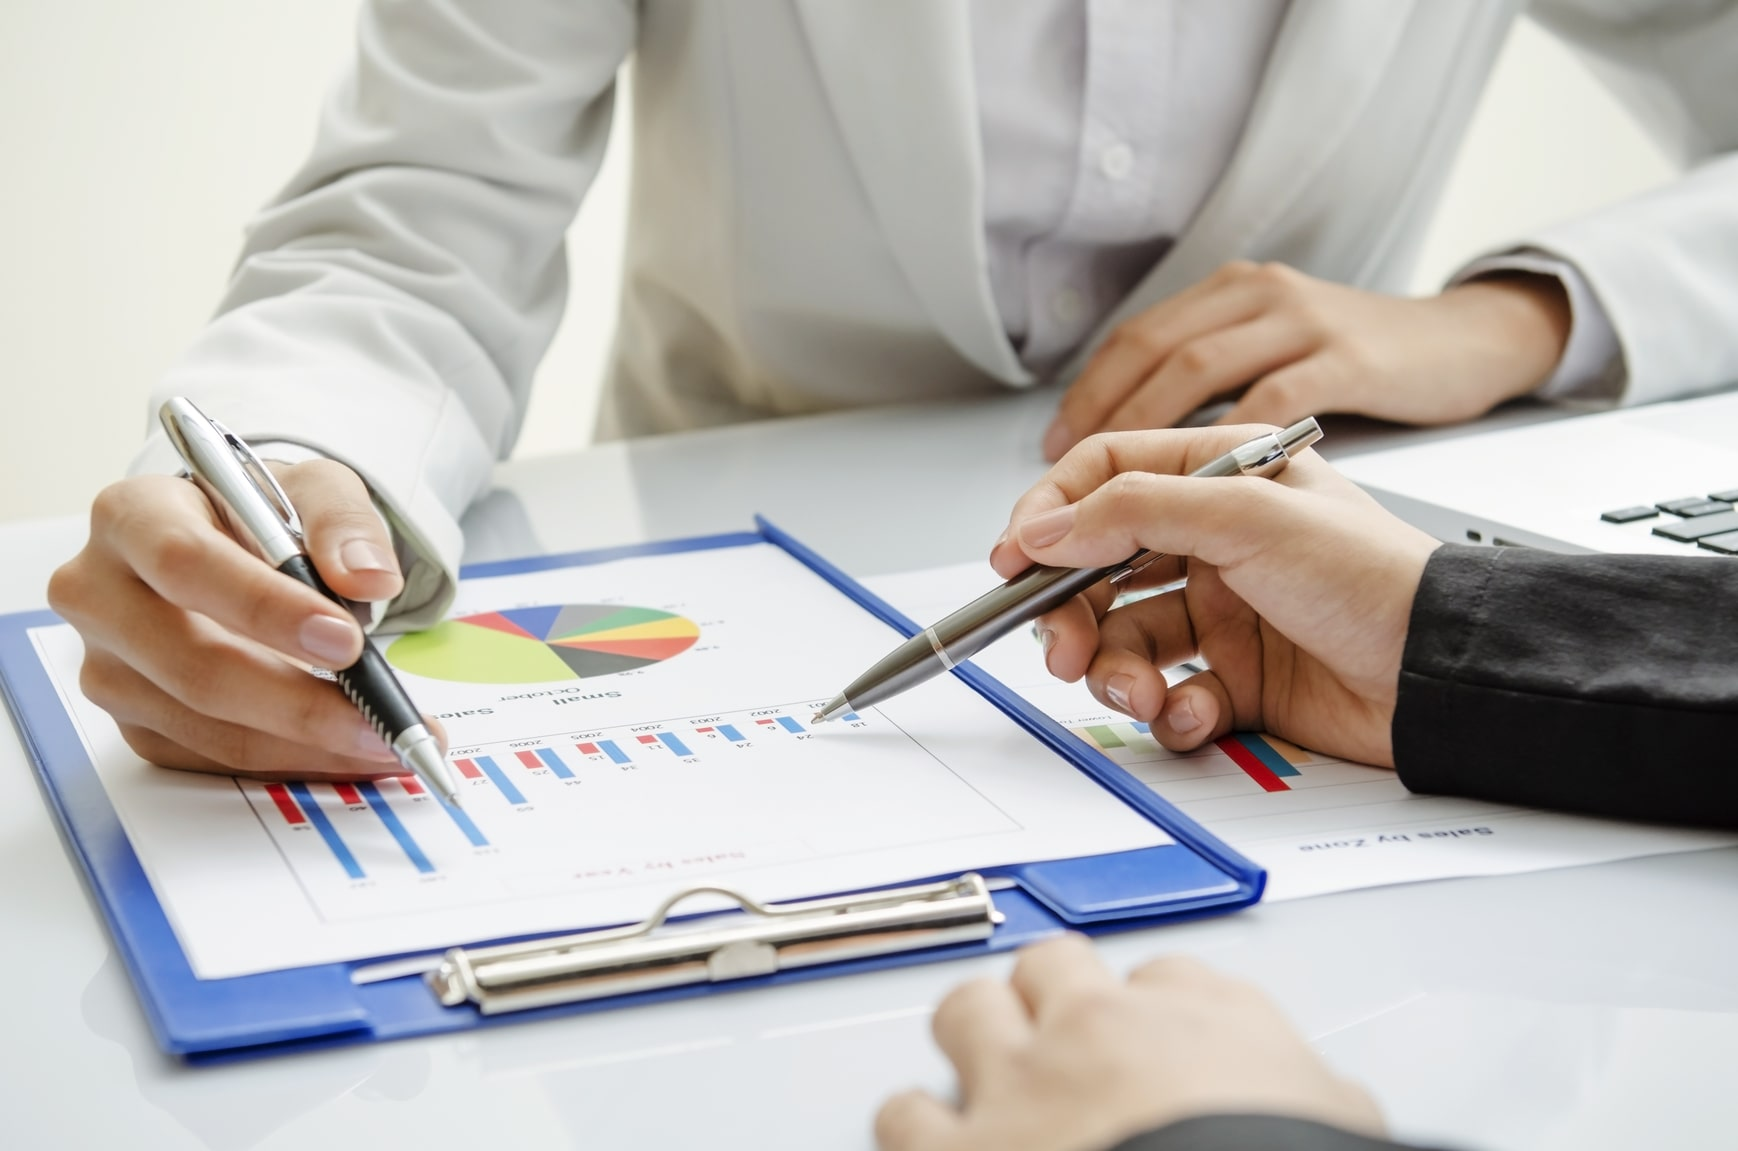 Why Consider Professional Bookkeeping Services for Small Business